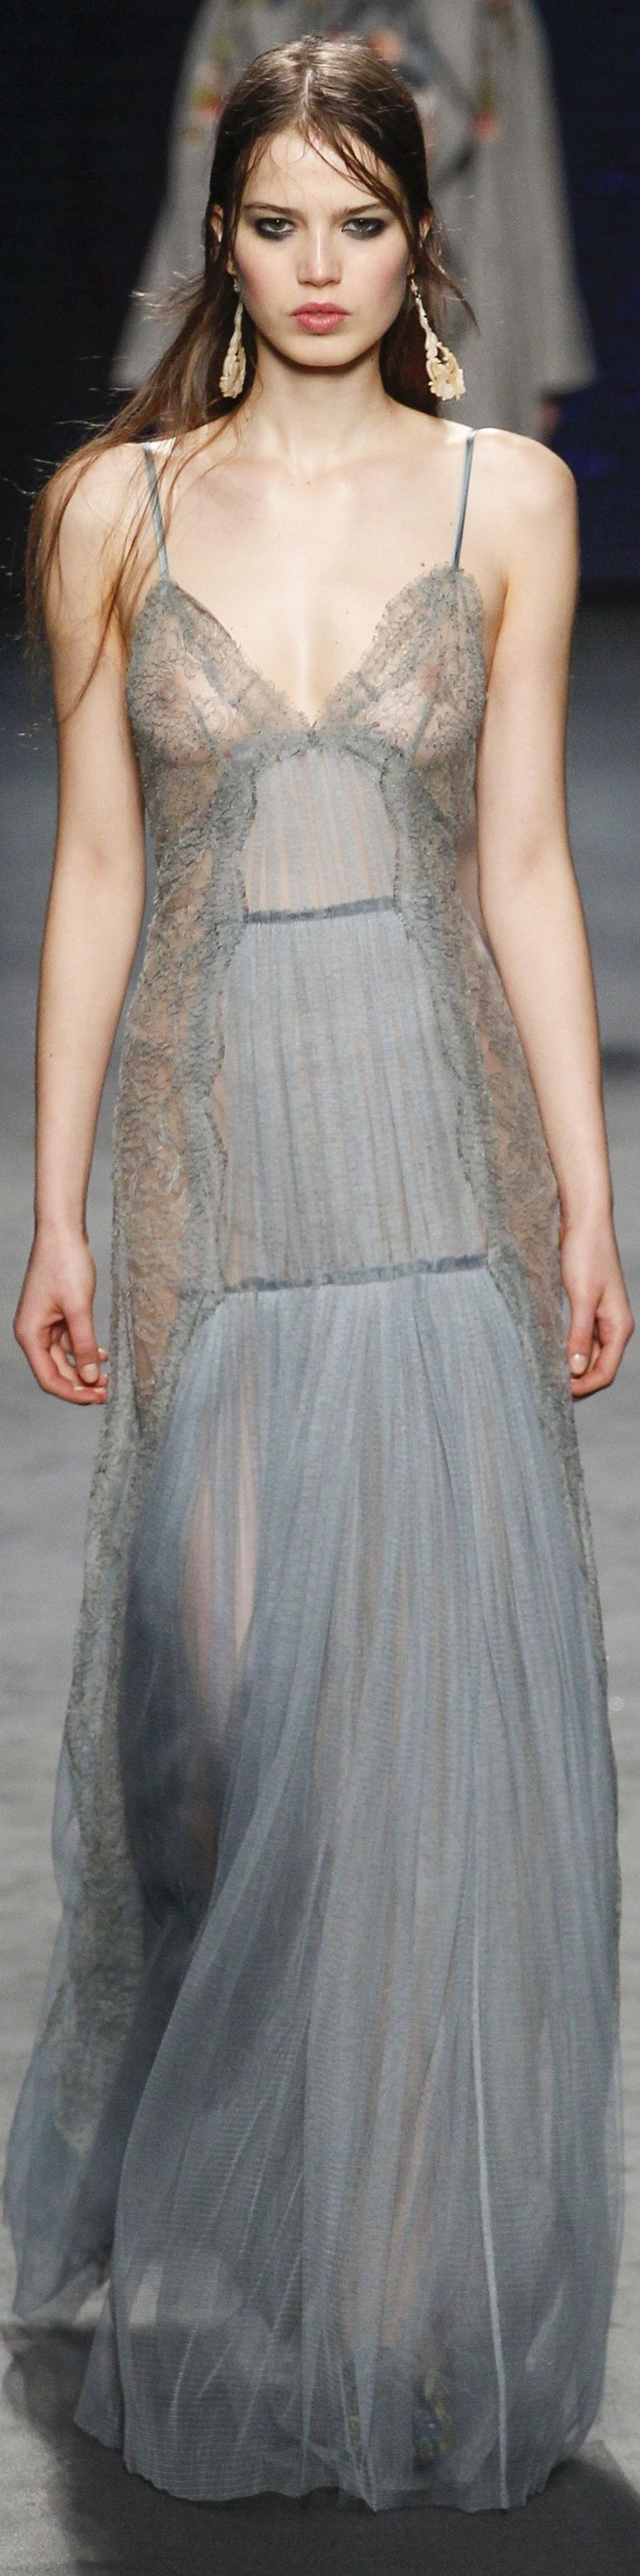 Alberta Ferretti fall 2016 RTW vogue